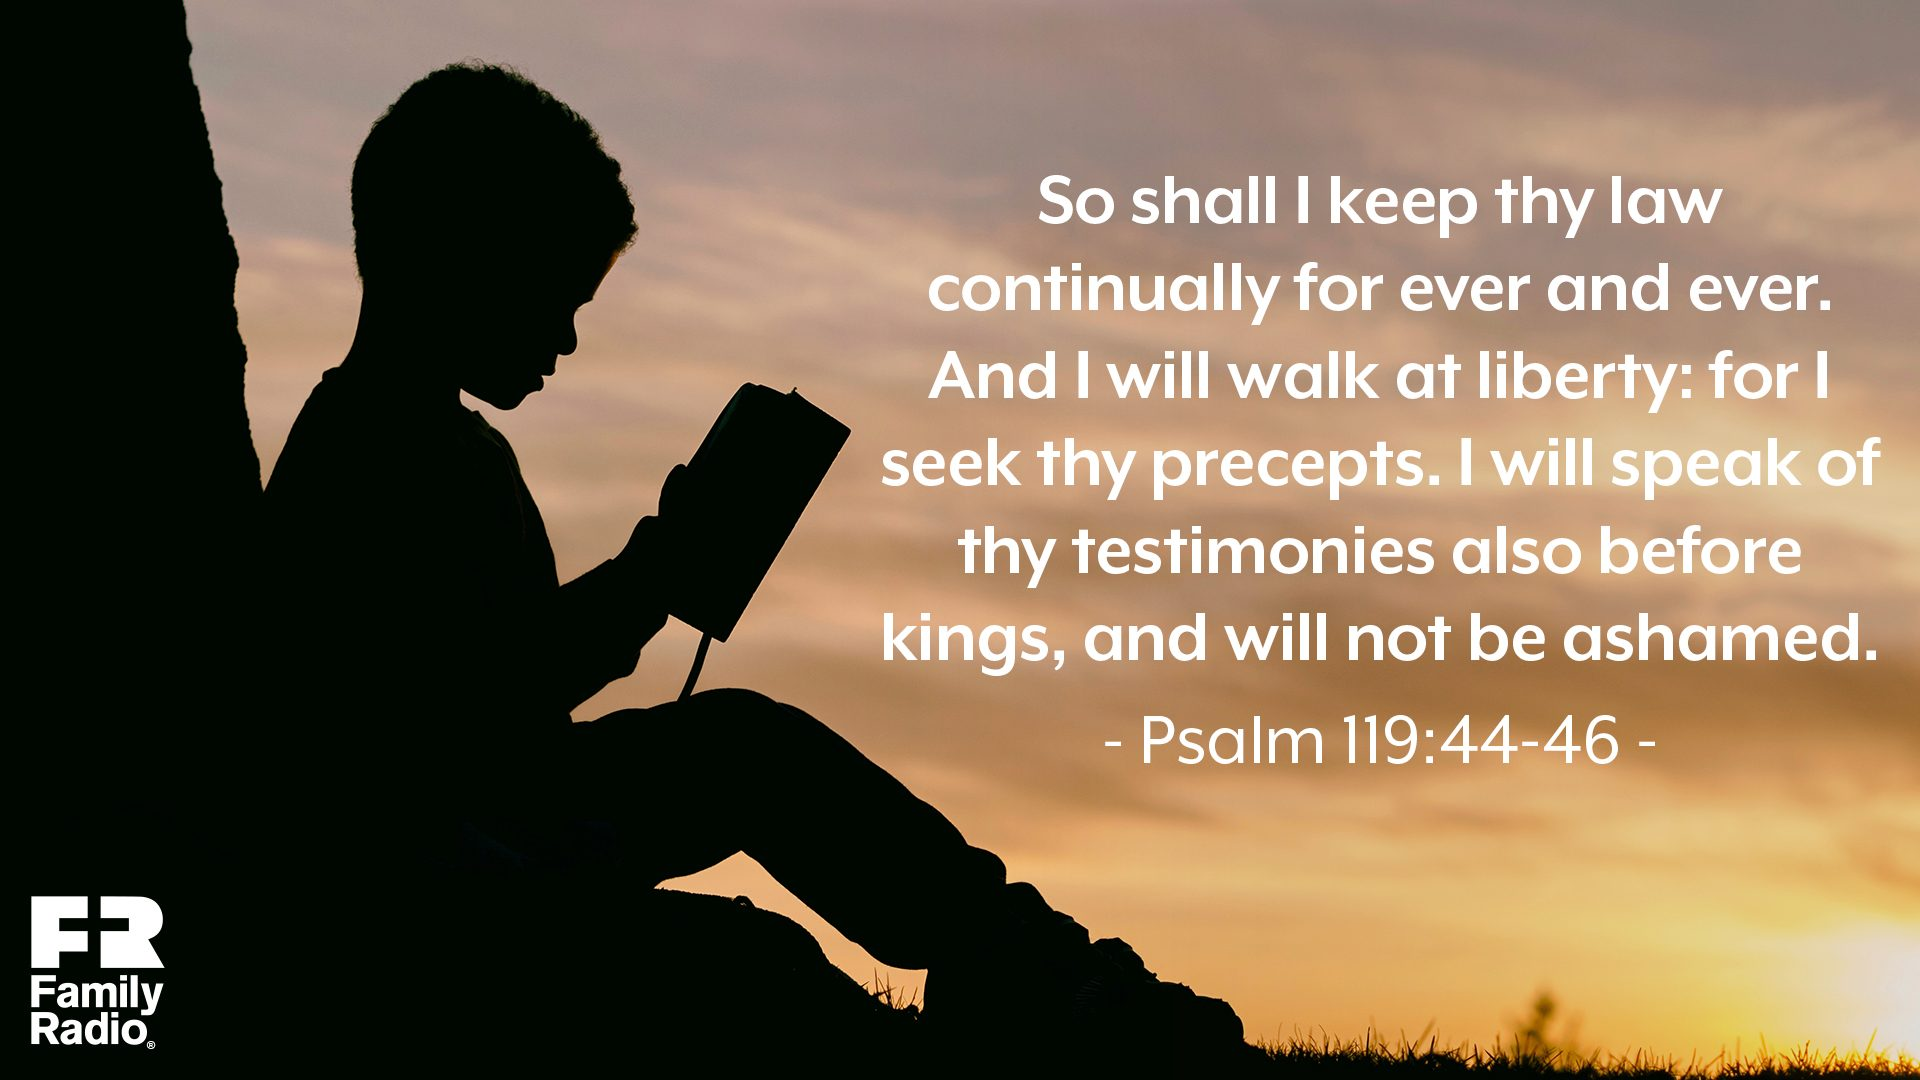 """So shall I keep thy law continually for ever and ever. And I will walk at liberty: for I seek thy precepts. I will speak of thy testimonies also before kings, and will not be ashamed."""